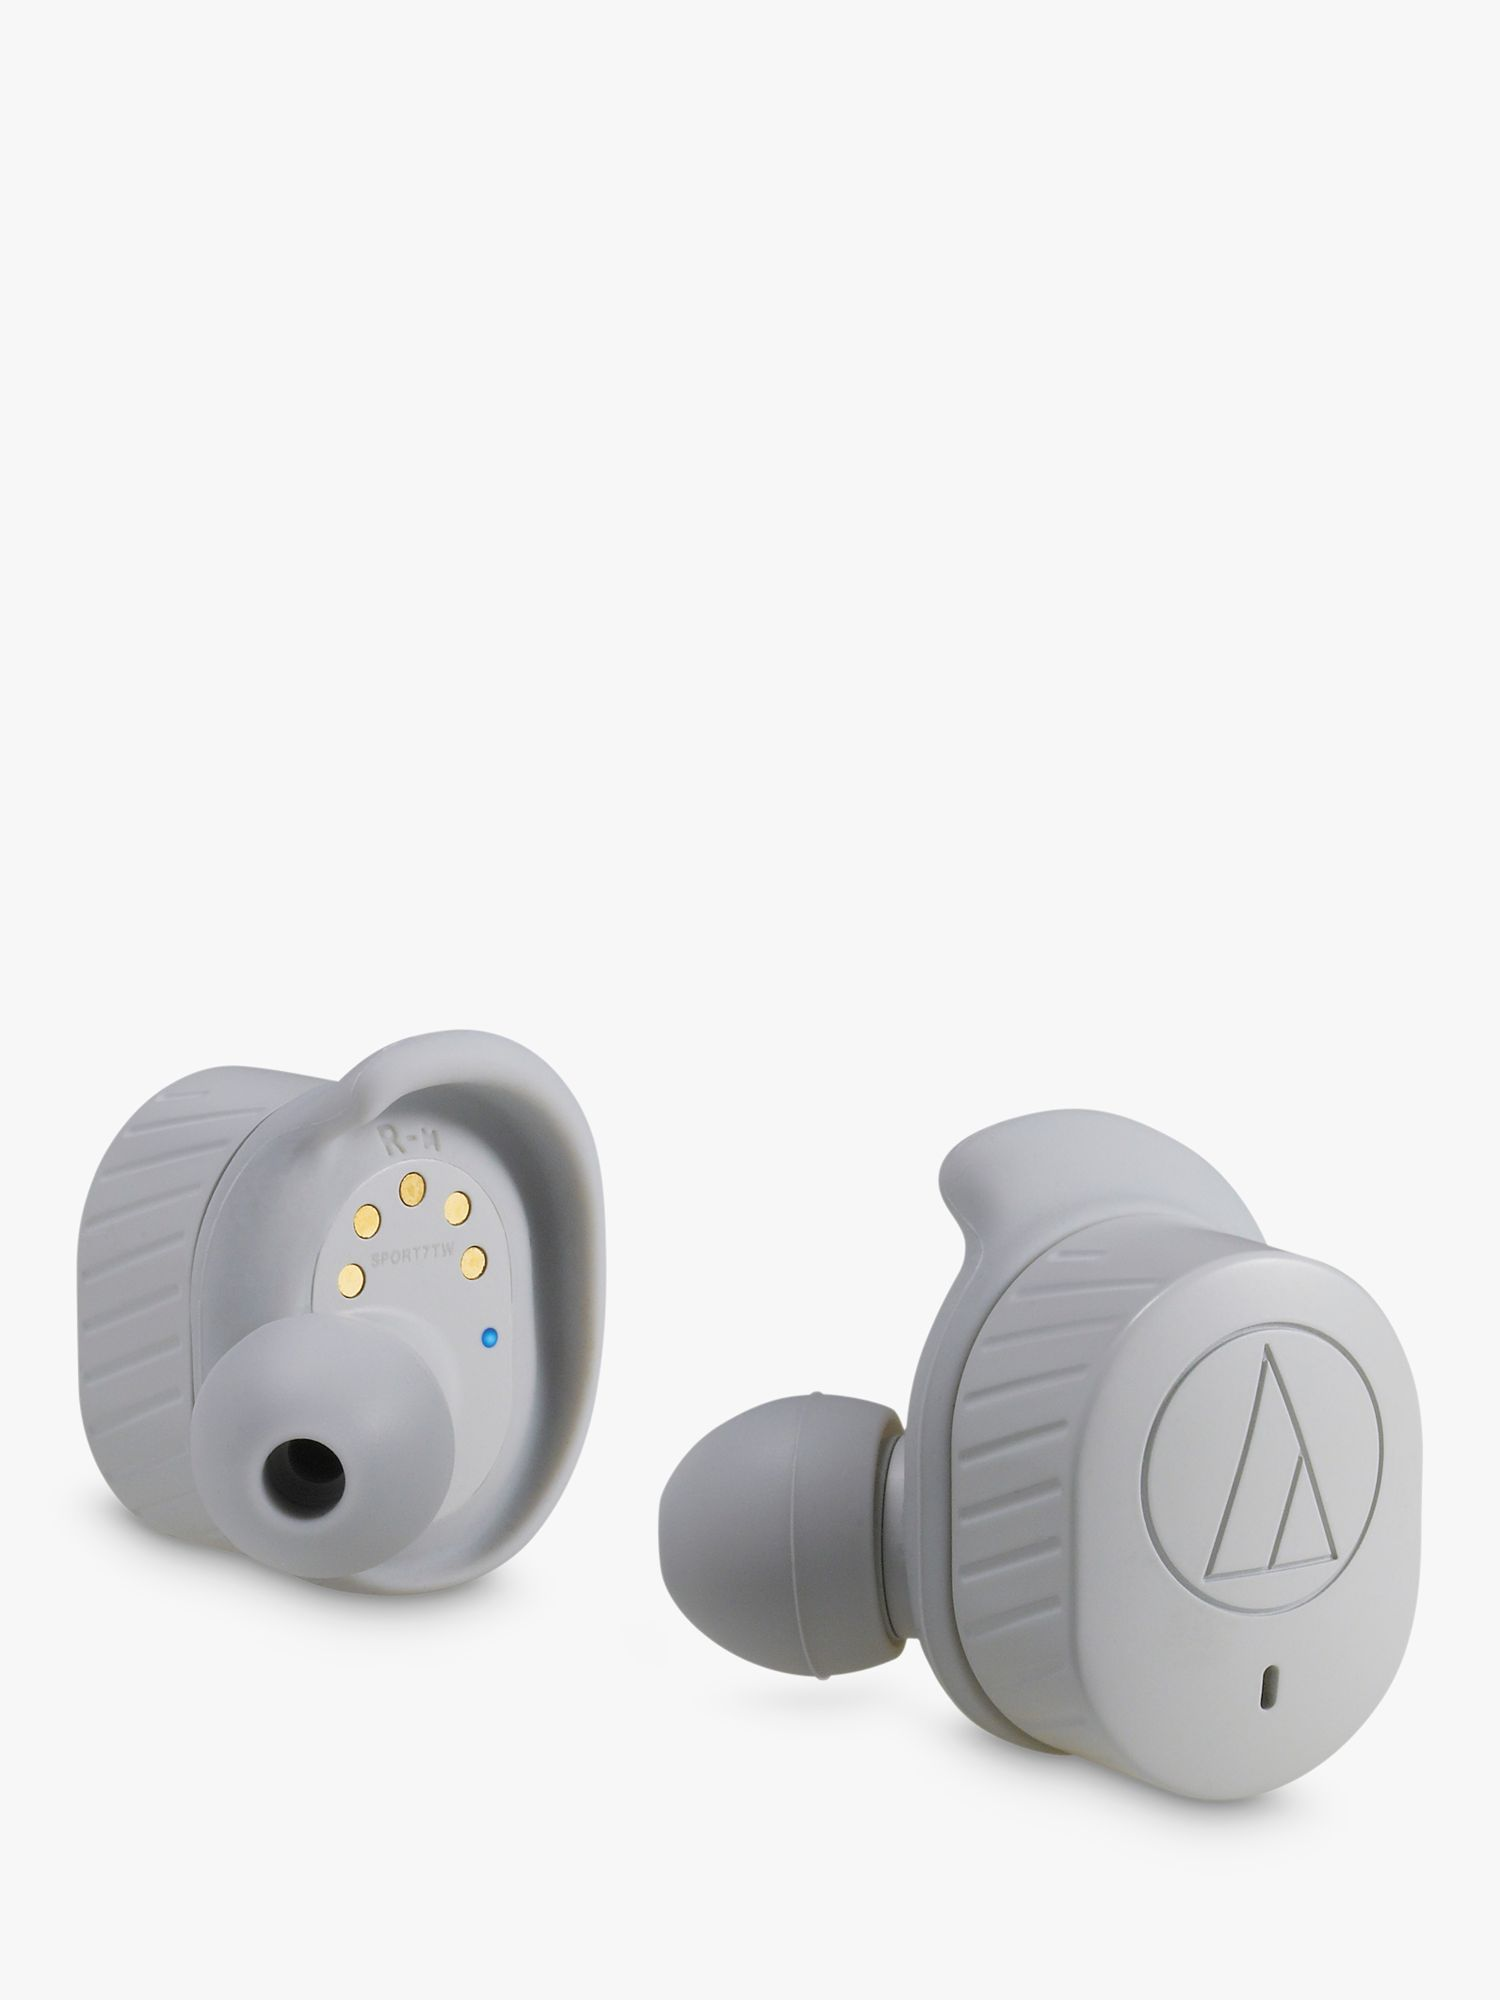 Audio-Technica Audio-Technica ATH-SPORT7TW True Wireless Sweat & Weather-Resistant Bluetooth In-Ear Headphones with Mic/Remote